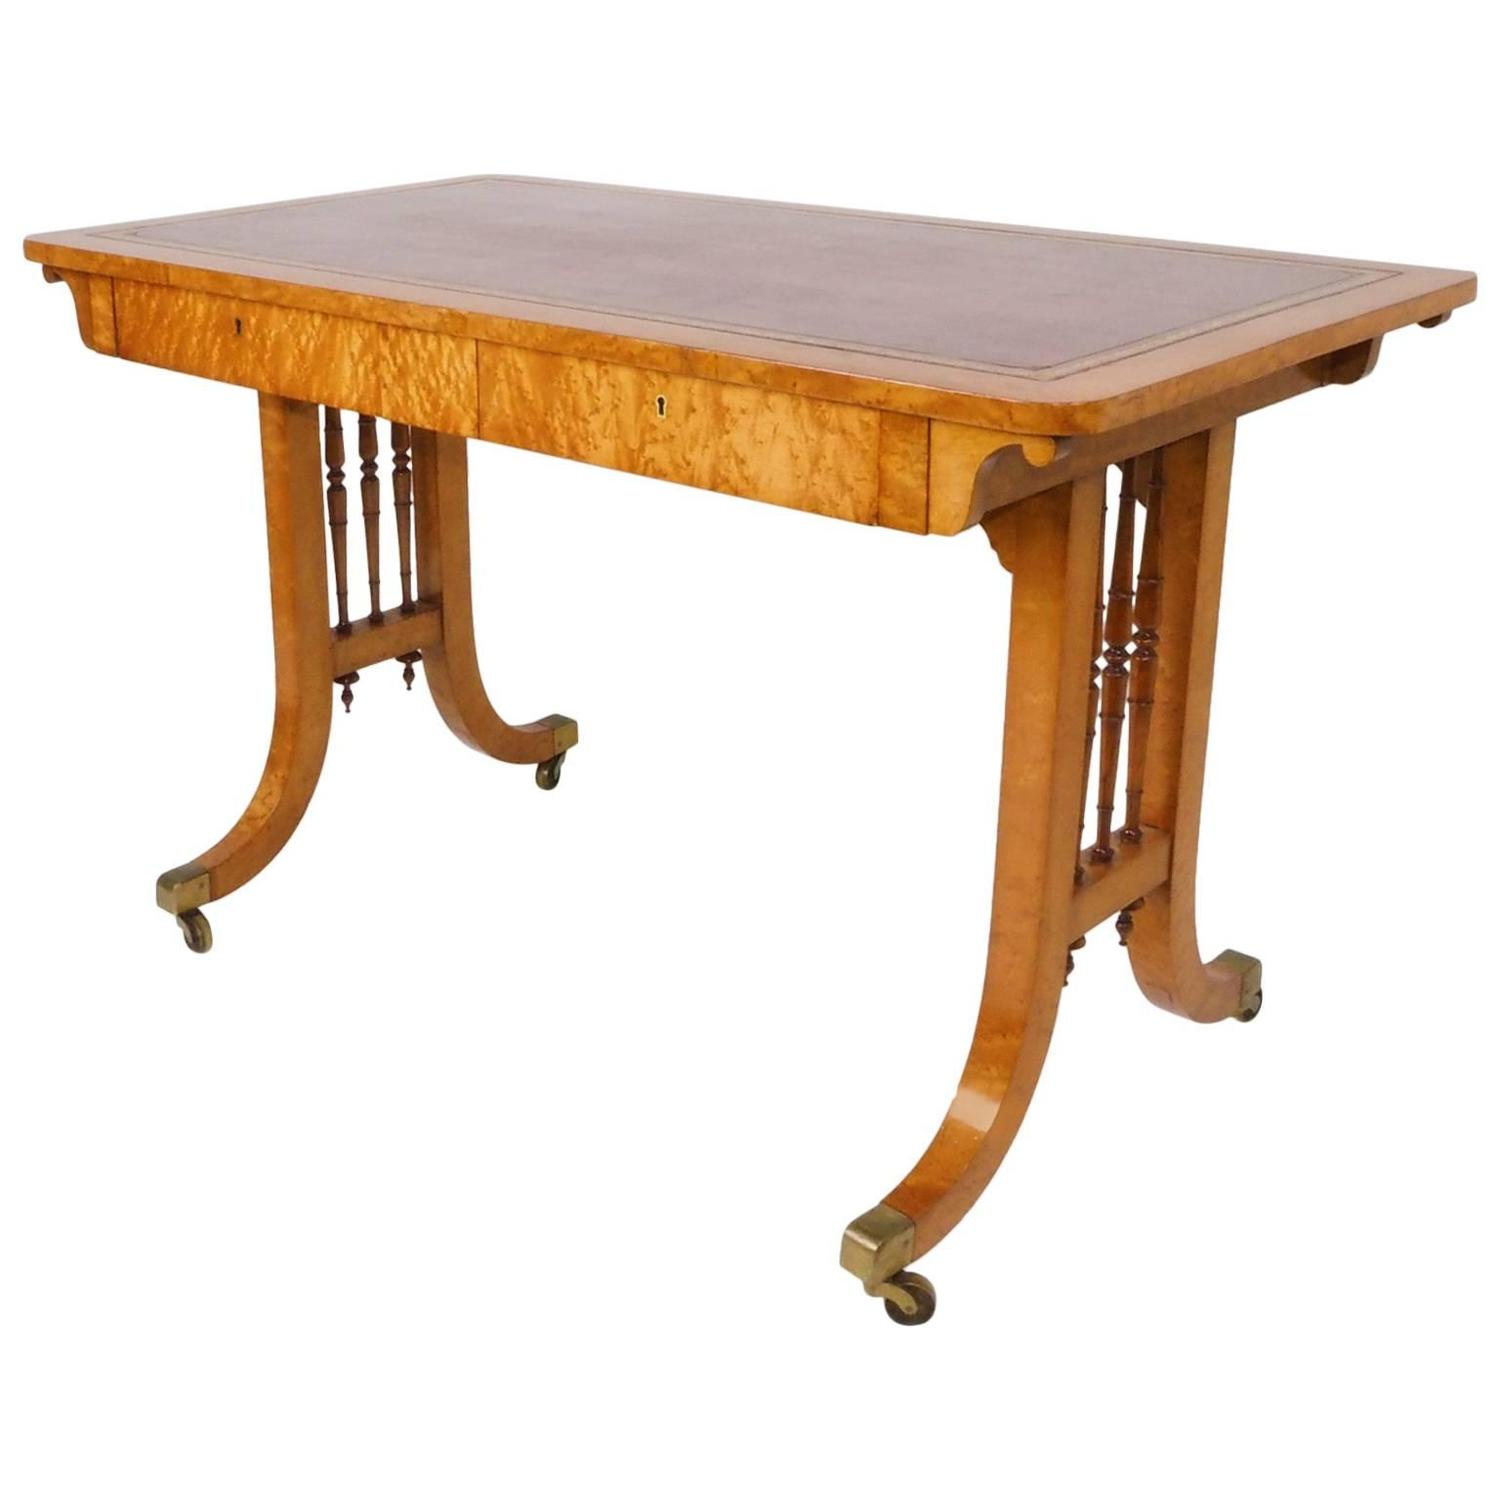 Bird 39 s eye maple writing table circa 1825 for sale at 1stdibs for Furniture 1825